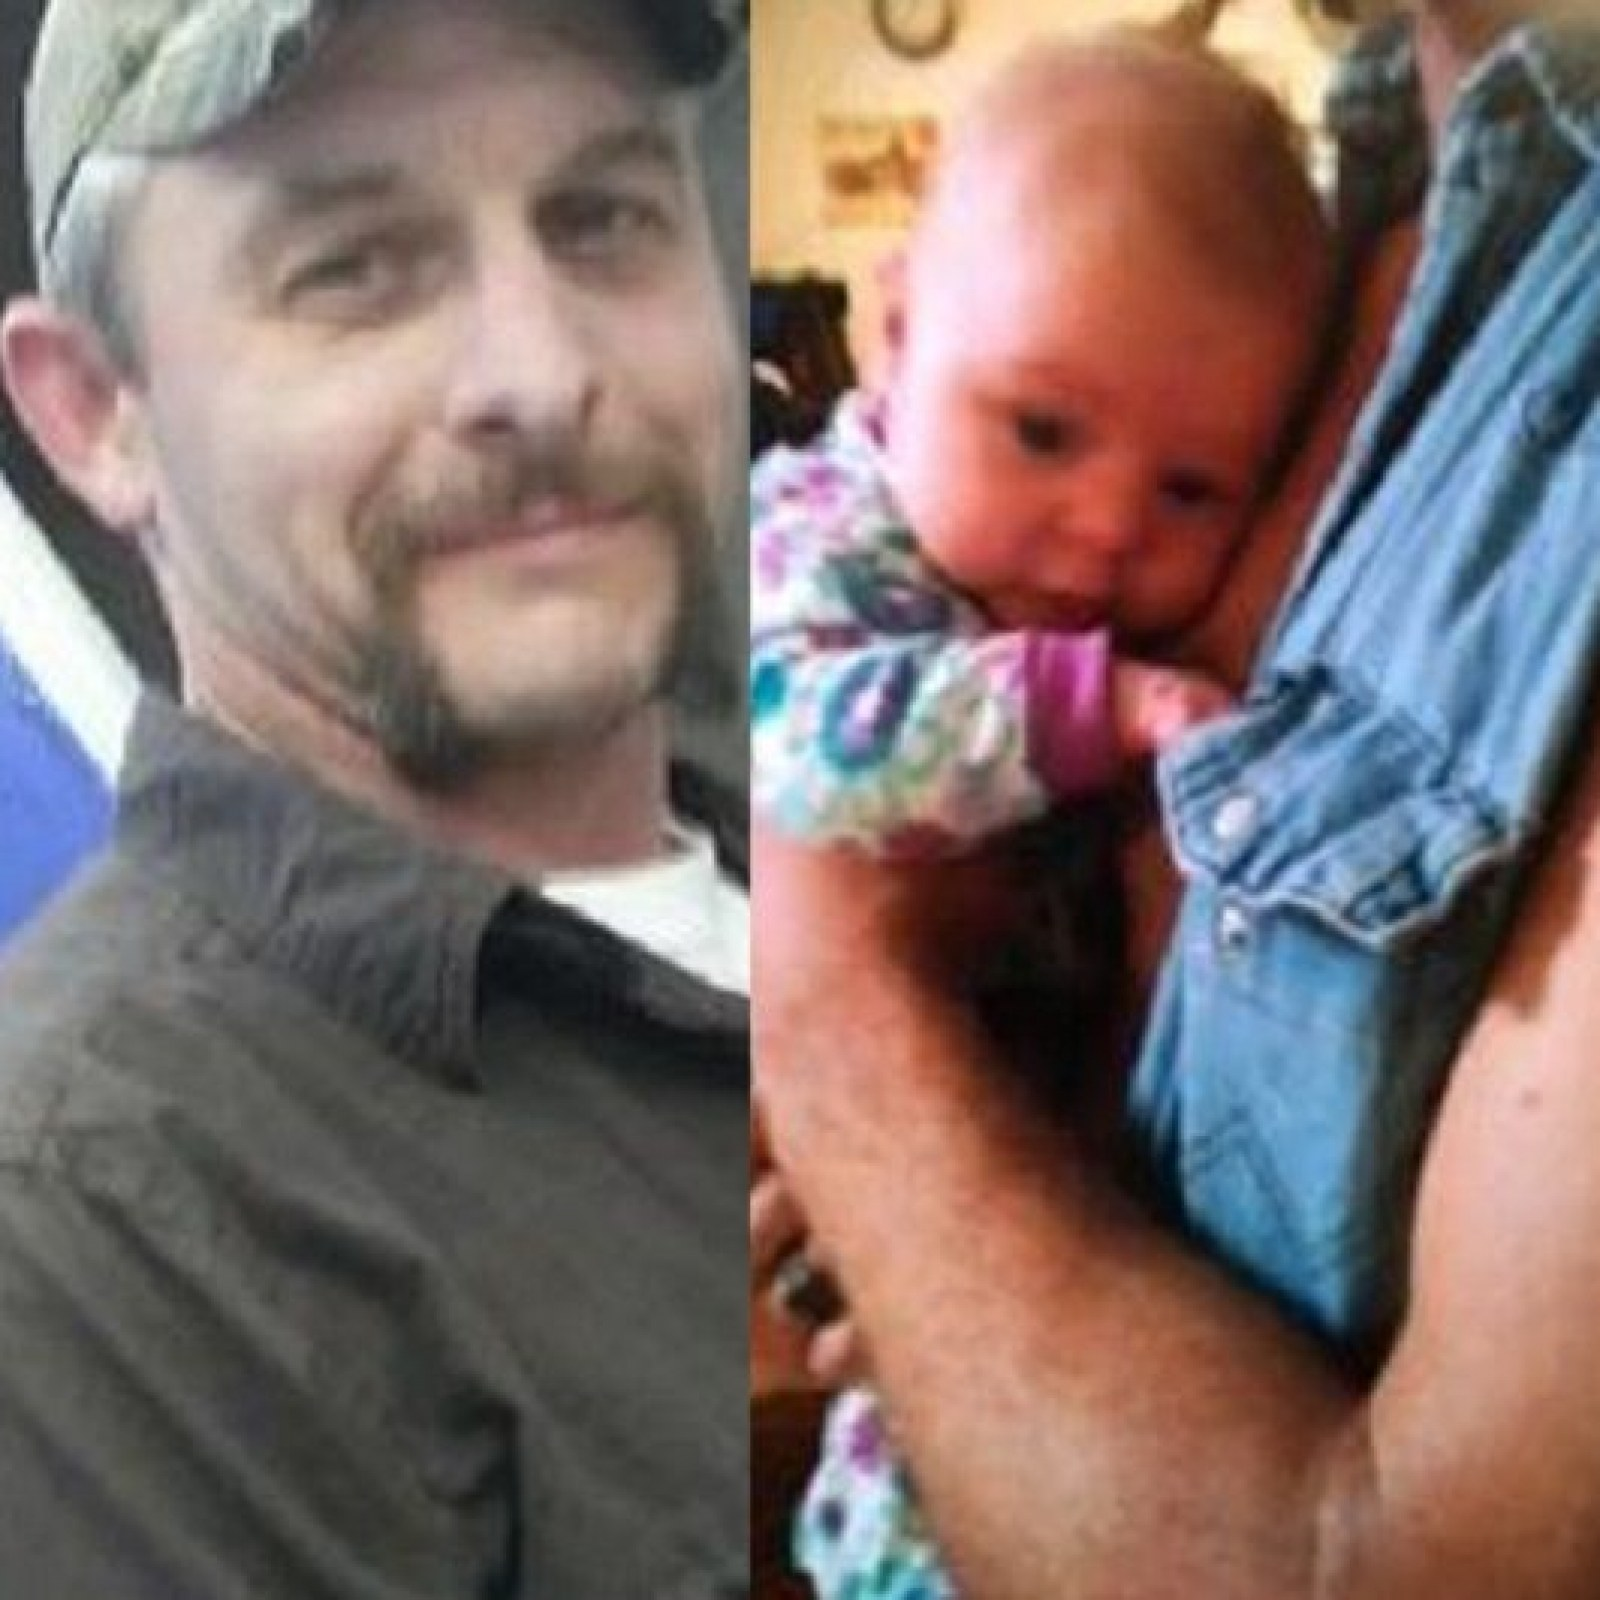 Amber Alert Arkansas Infant Taken By Biological Father Who Stabbed Mother In Leg Before Fleeing Found Alive